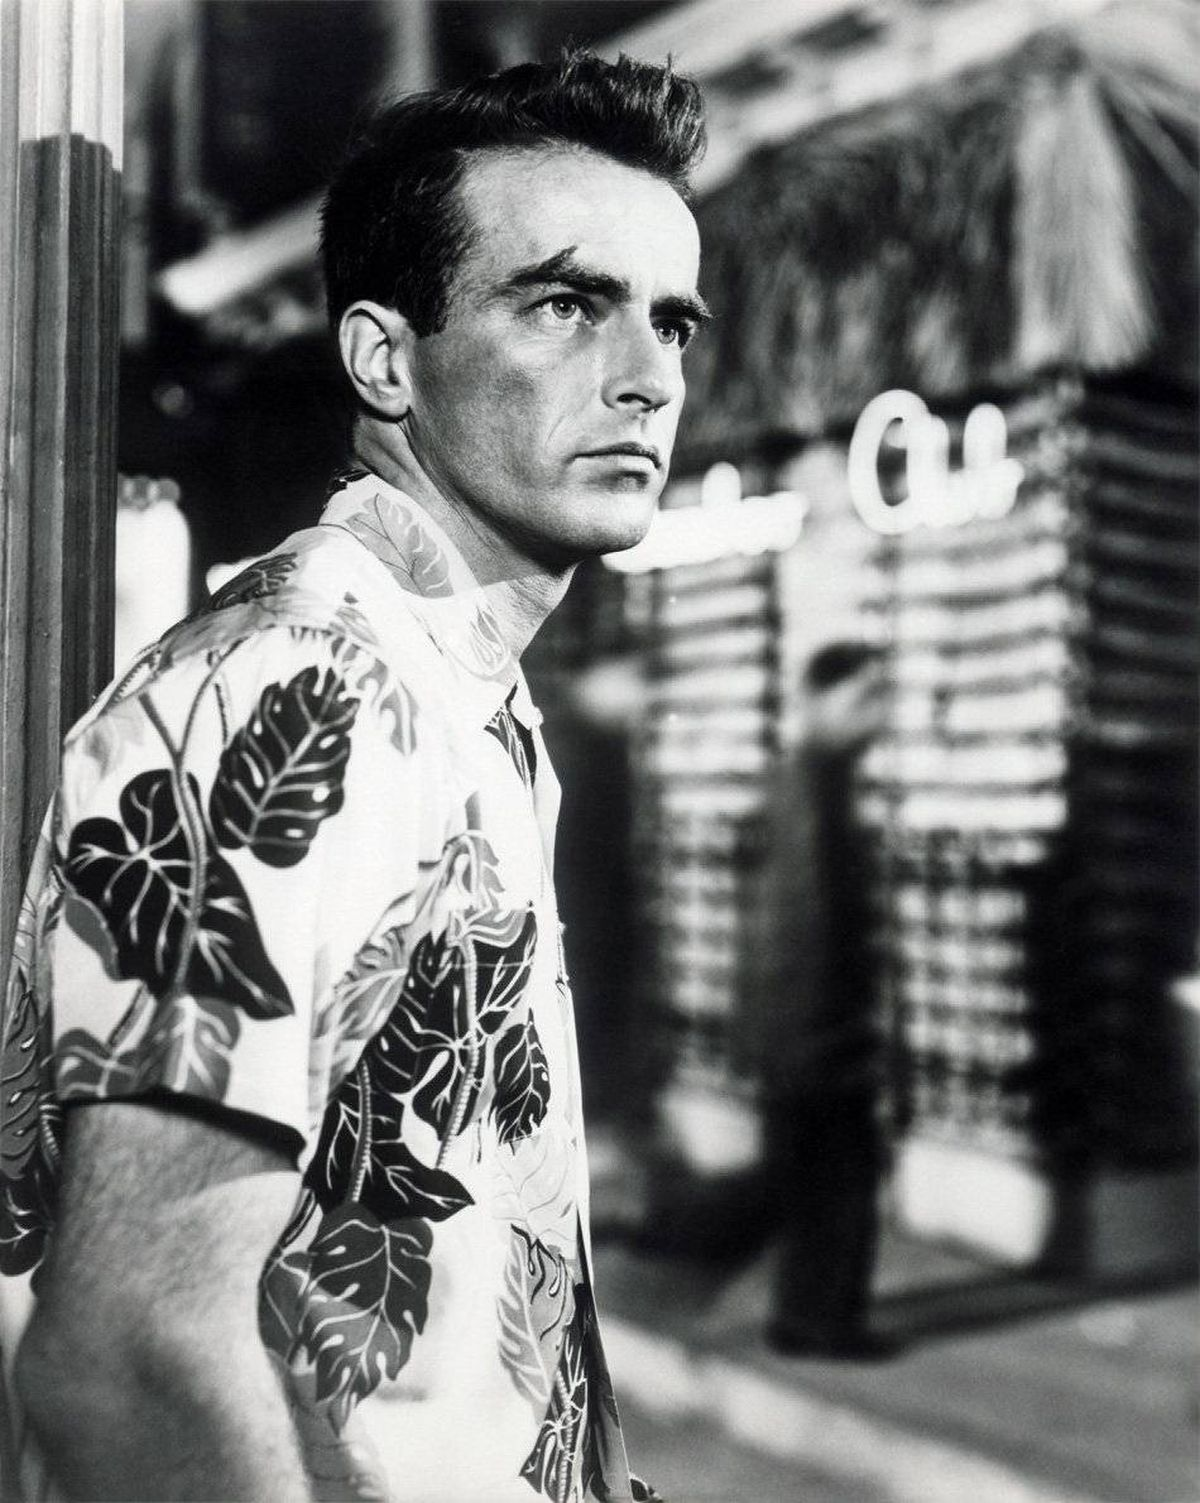 MOVIE From Here to Eternity TCM, 10:30 p.m. ET; 7:30 p.m. PT Released less than a decade after the conclusion of the Second World War, this classic film has lost none of its impact. Set in Honolulu in the days immediately before the attack on Pearl Harbor, the story focuses primarily on two wartime characters. Sergeant Warden (Burt Lancaster) wants to romance the wife (Deborah Kerr) of his commanding officer; lowly private Prewitt (Montgomery Clift), meanwhile, simply wants to be left alone. Everything changes of course, on Dec. 7, 1941, when the skies above Pearl Harbor are full of Japanese bombers. The 1953 epic won eight Academy Awards, including Best Picture and Best Actor trophies for support players Frank Sinatra and Donna Reed.